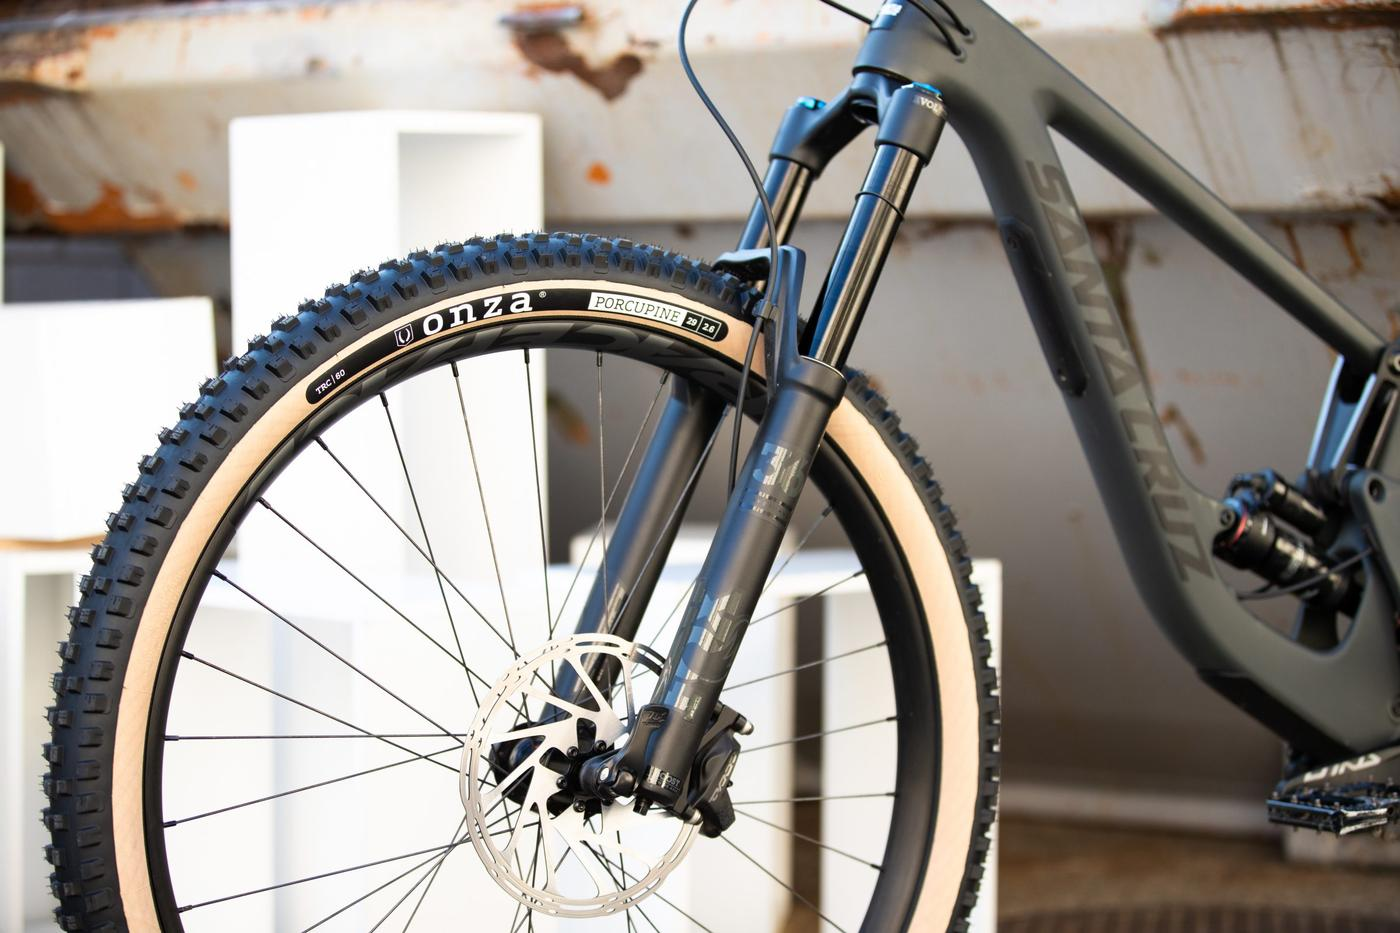 ONZA Ressurects the Porcupine Mountain Bike Tire